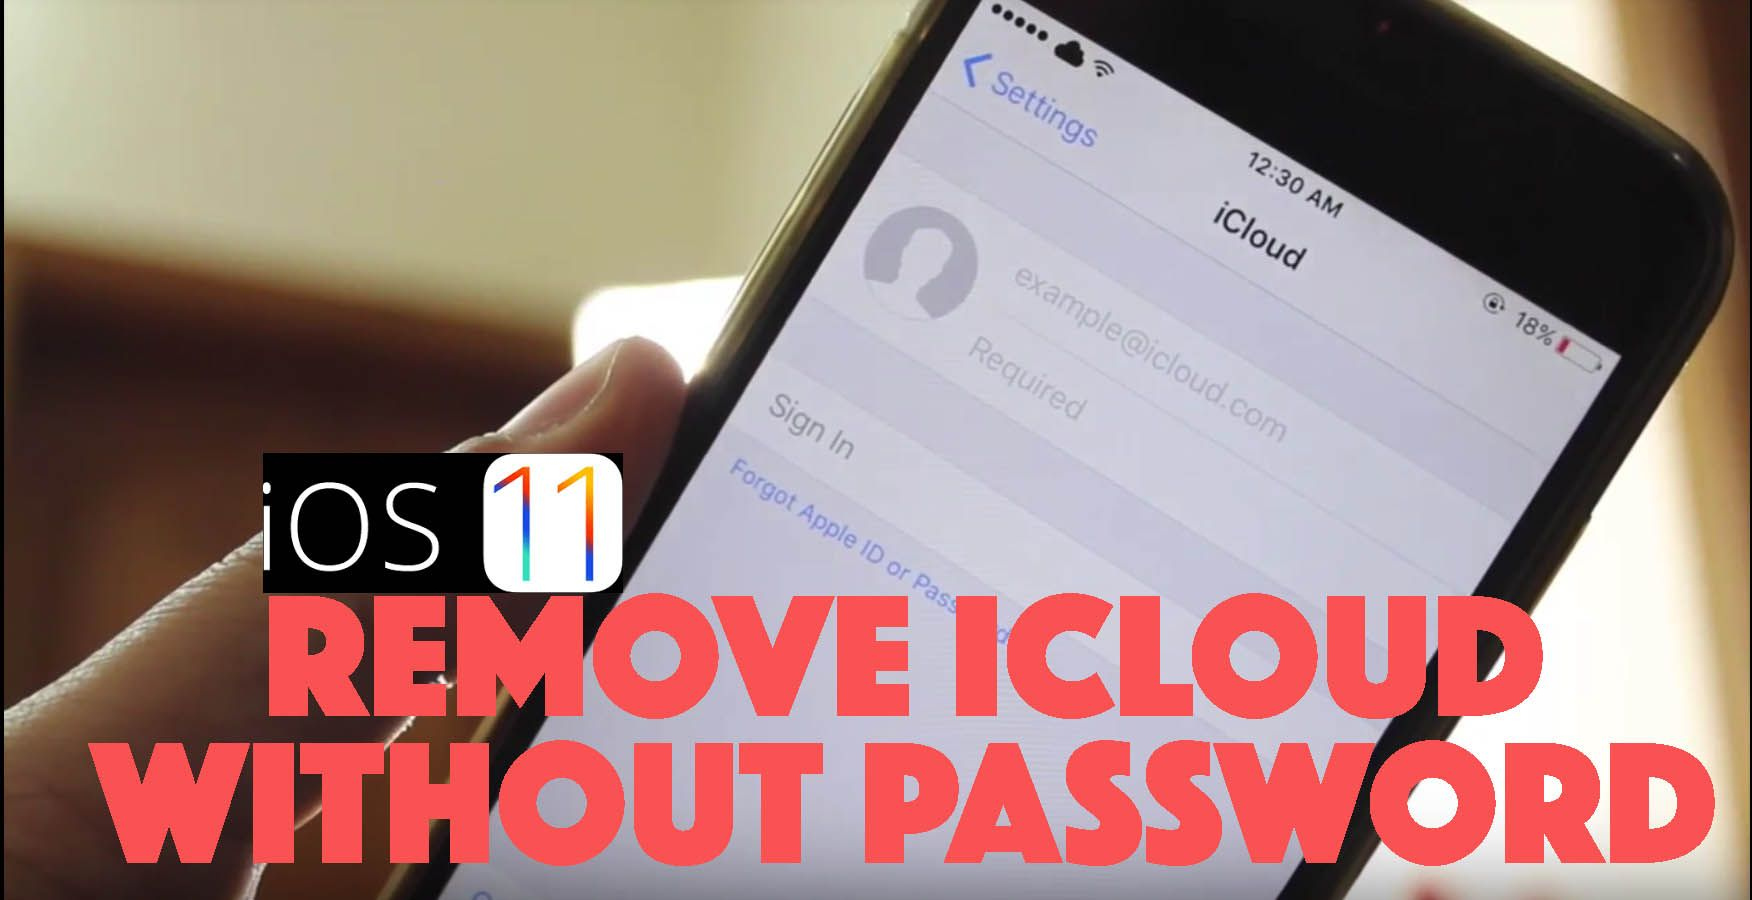 Delete Icloud Account From Iphone Without Password Ios11 Delete Icloud Account Without Password Turn Off Find My Iphone Icloud Unlock Iphone Free Ipad Hacks